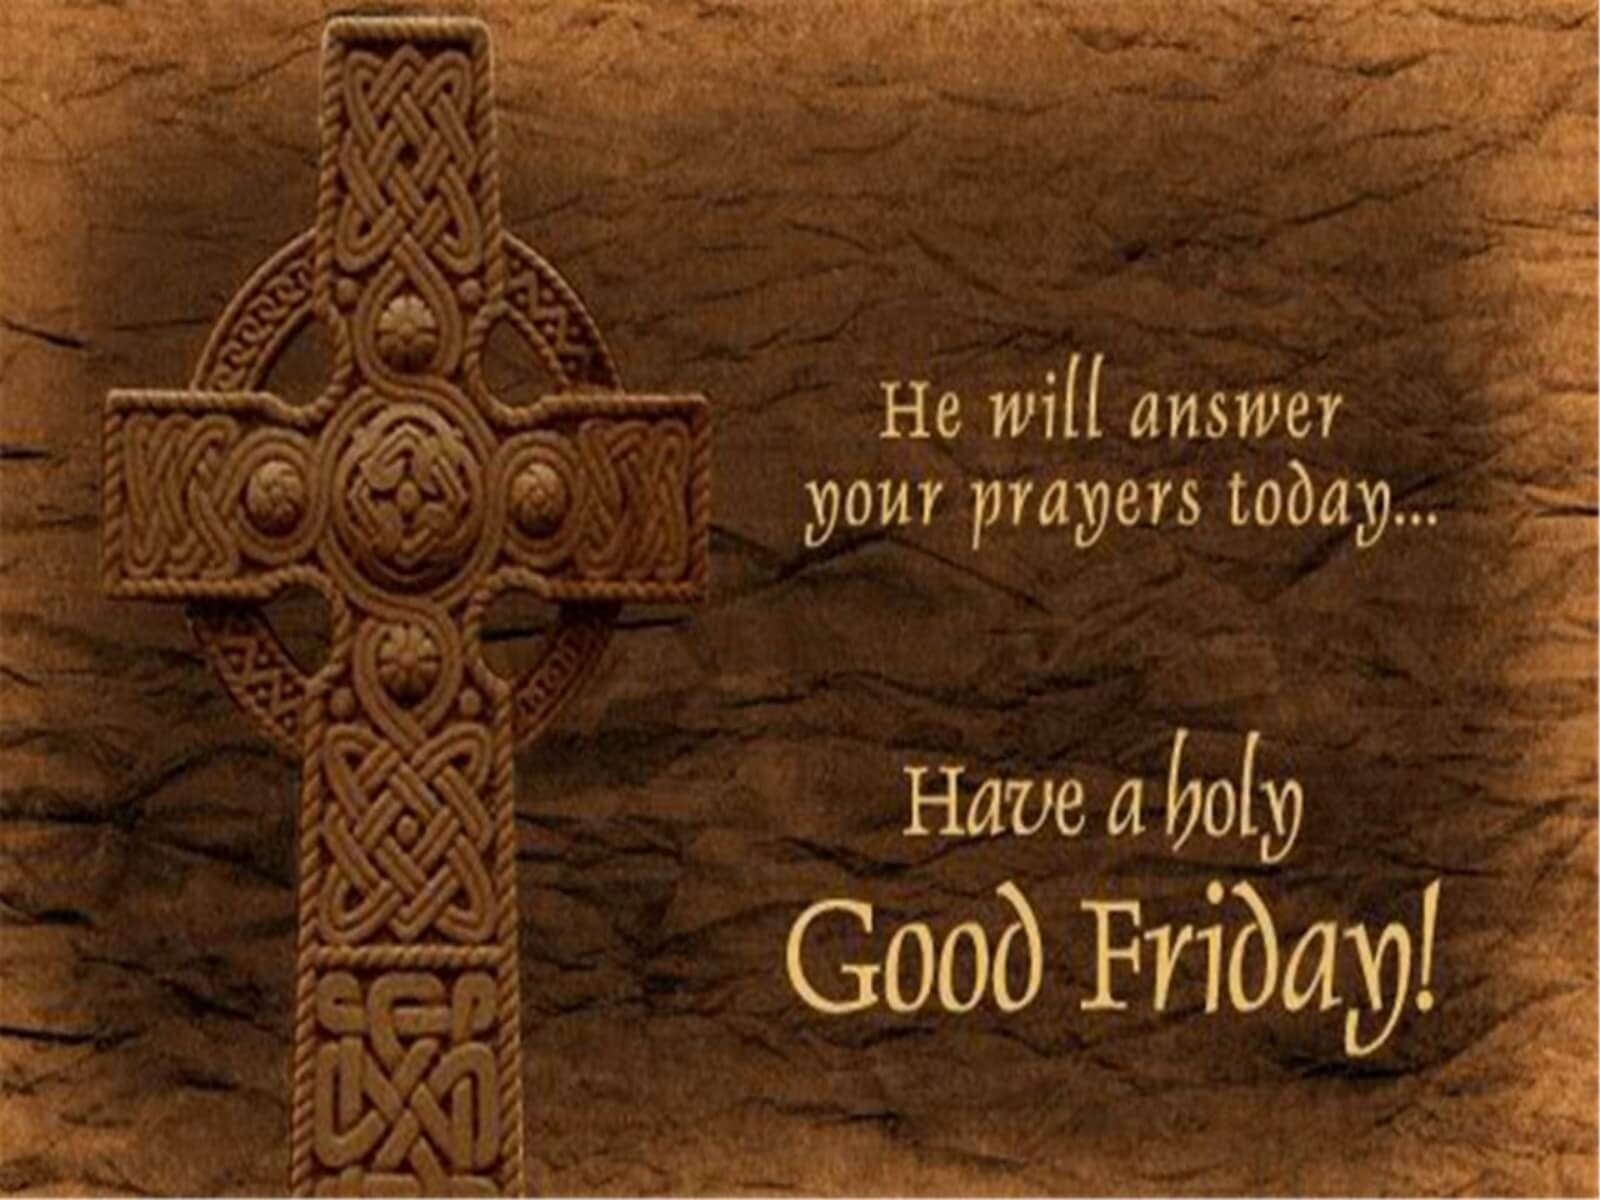 good friday hd wallpaper image desktop background